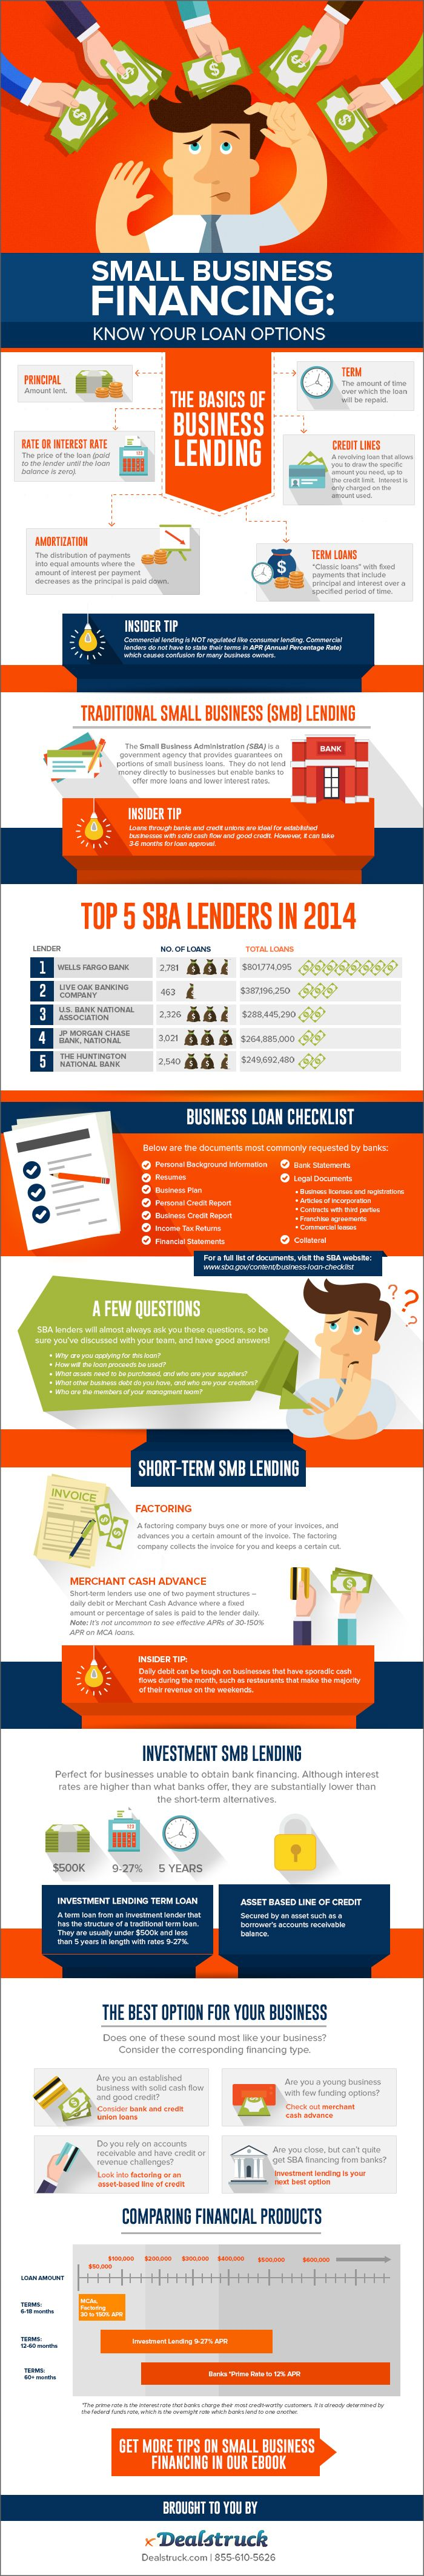 Small Business Financing: Know Your Loan Options - Tipsographic